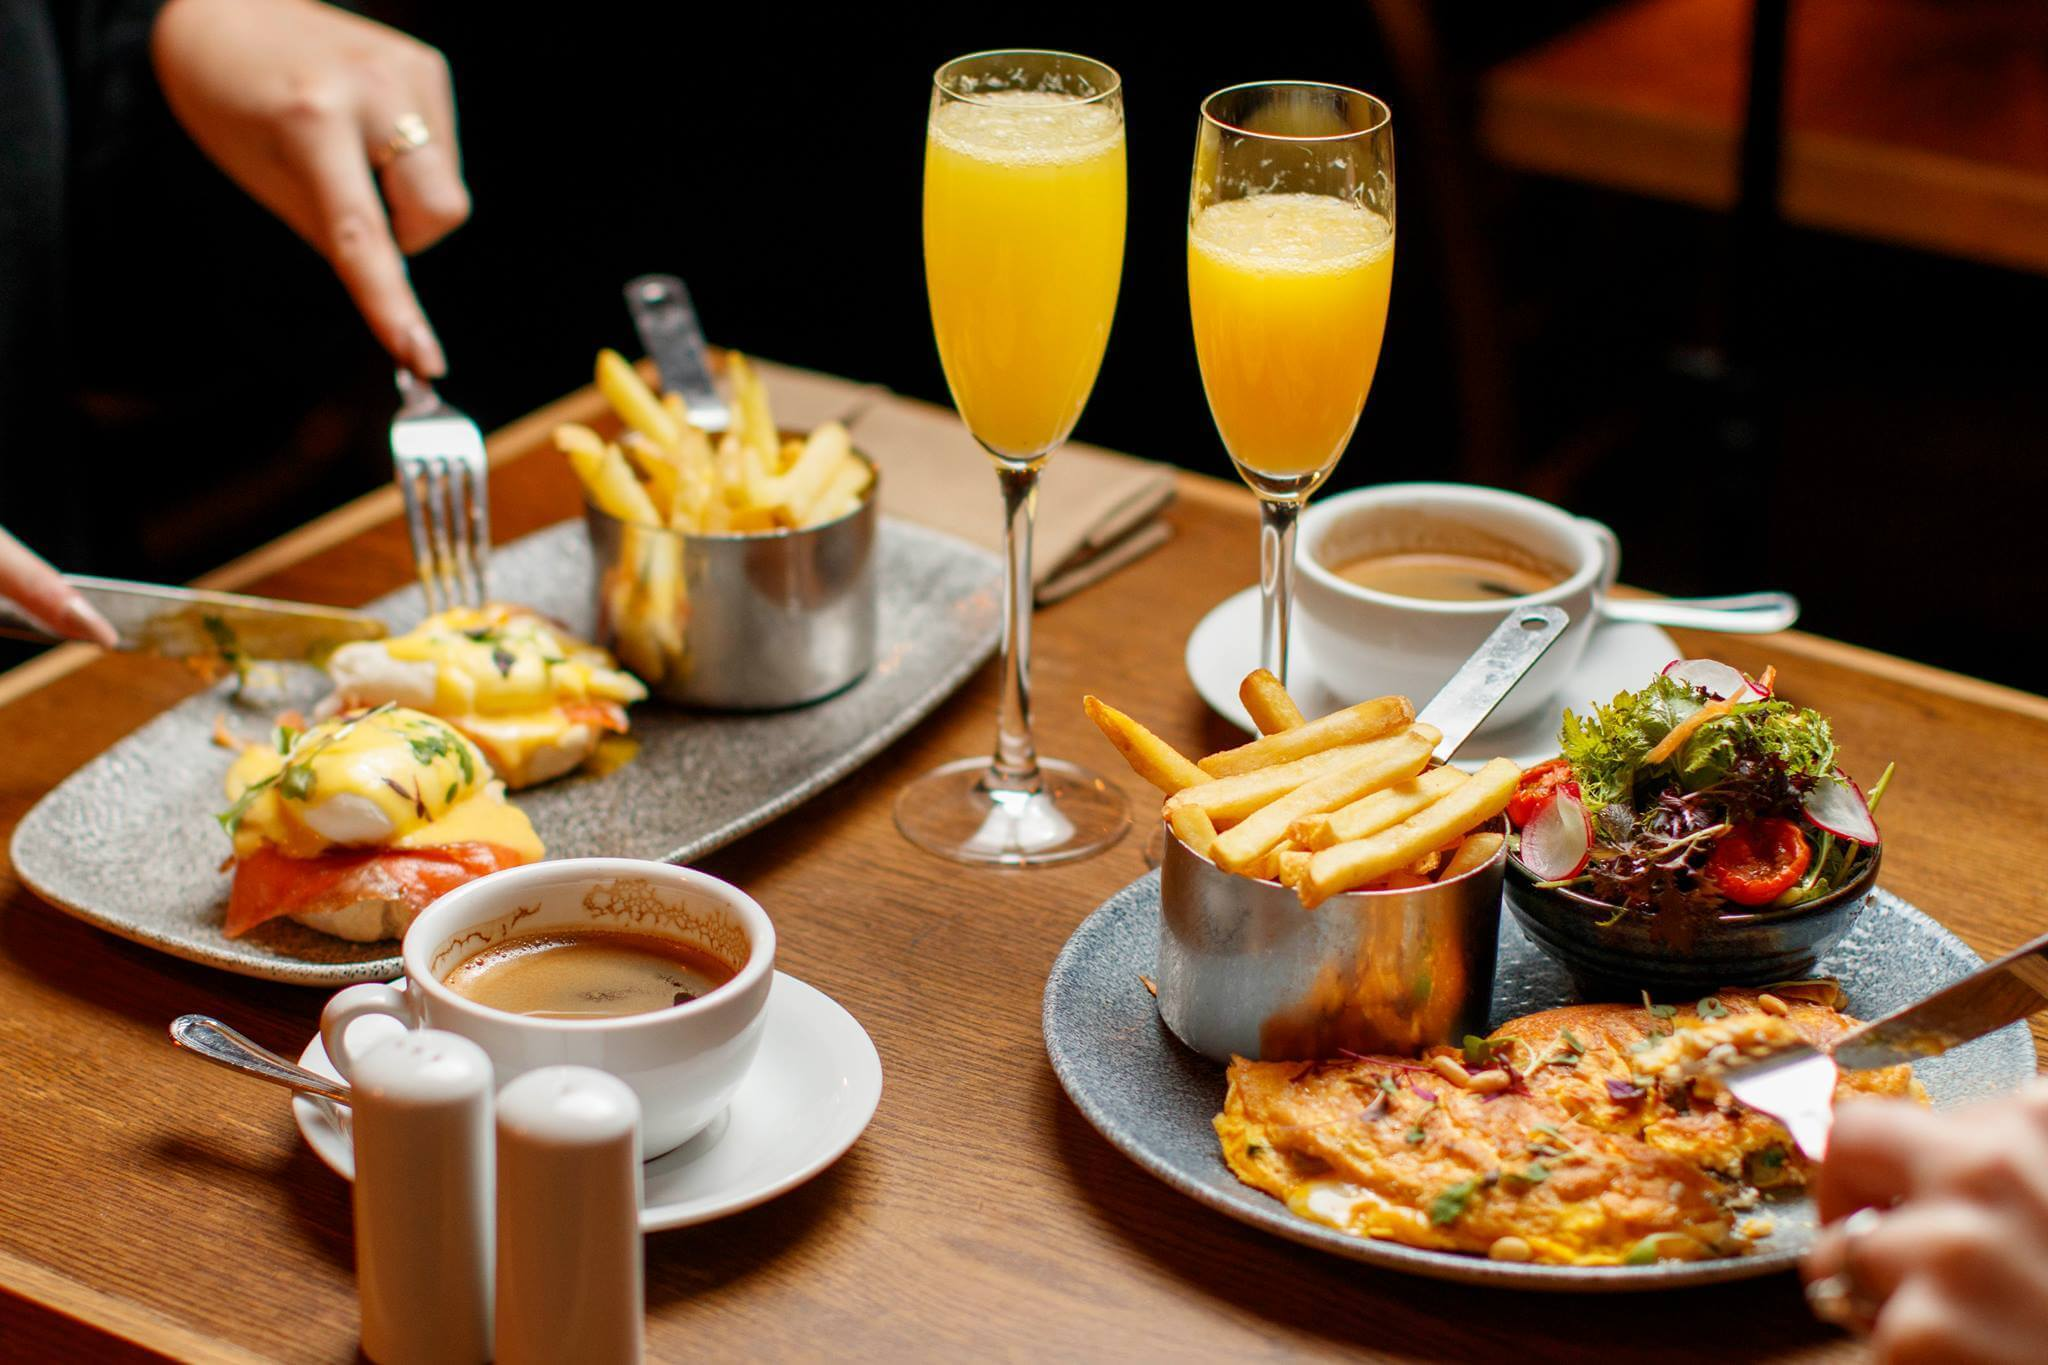 Best Bottomless Boozy Brunch - Dublin. Brasserie Sixty6